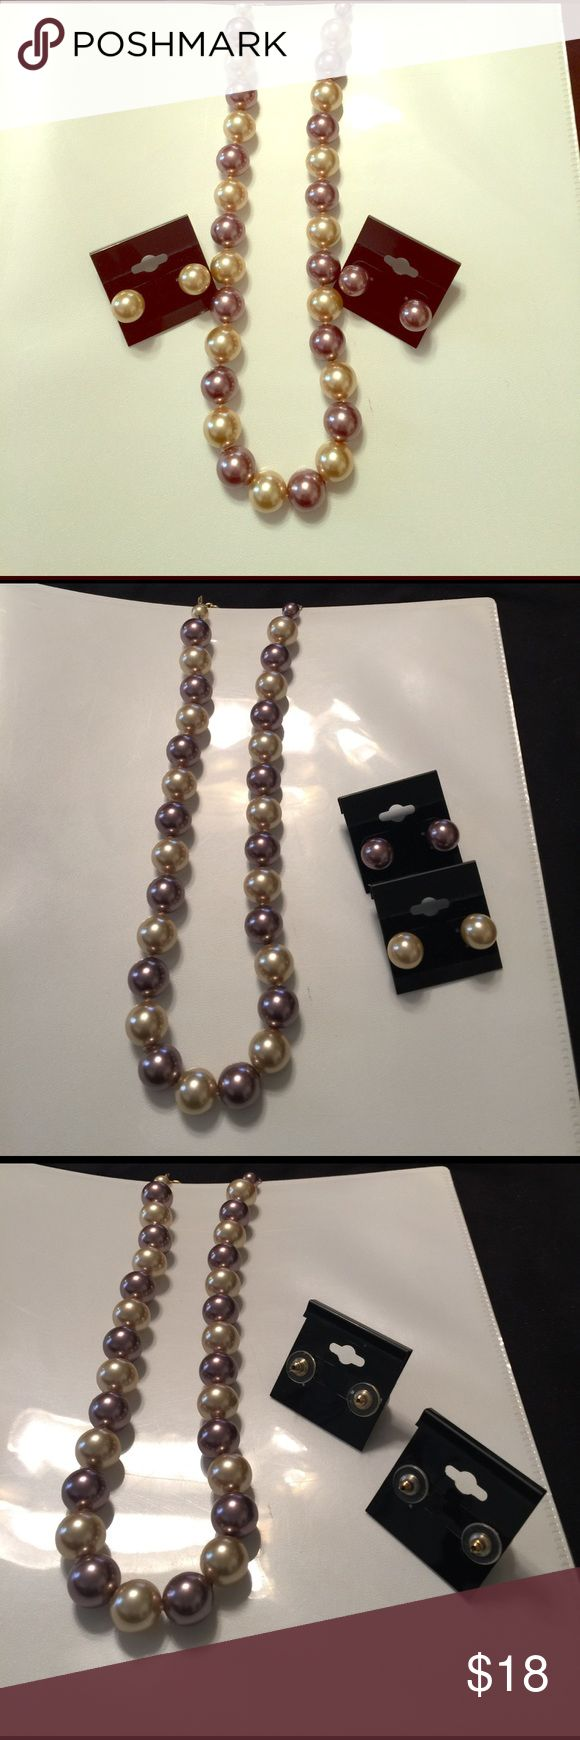 Necklace and earrings have never been worn. Pearl necklace cream and light purple with gold chain. Matching earrings. qvc Jewelry Necklaces